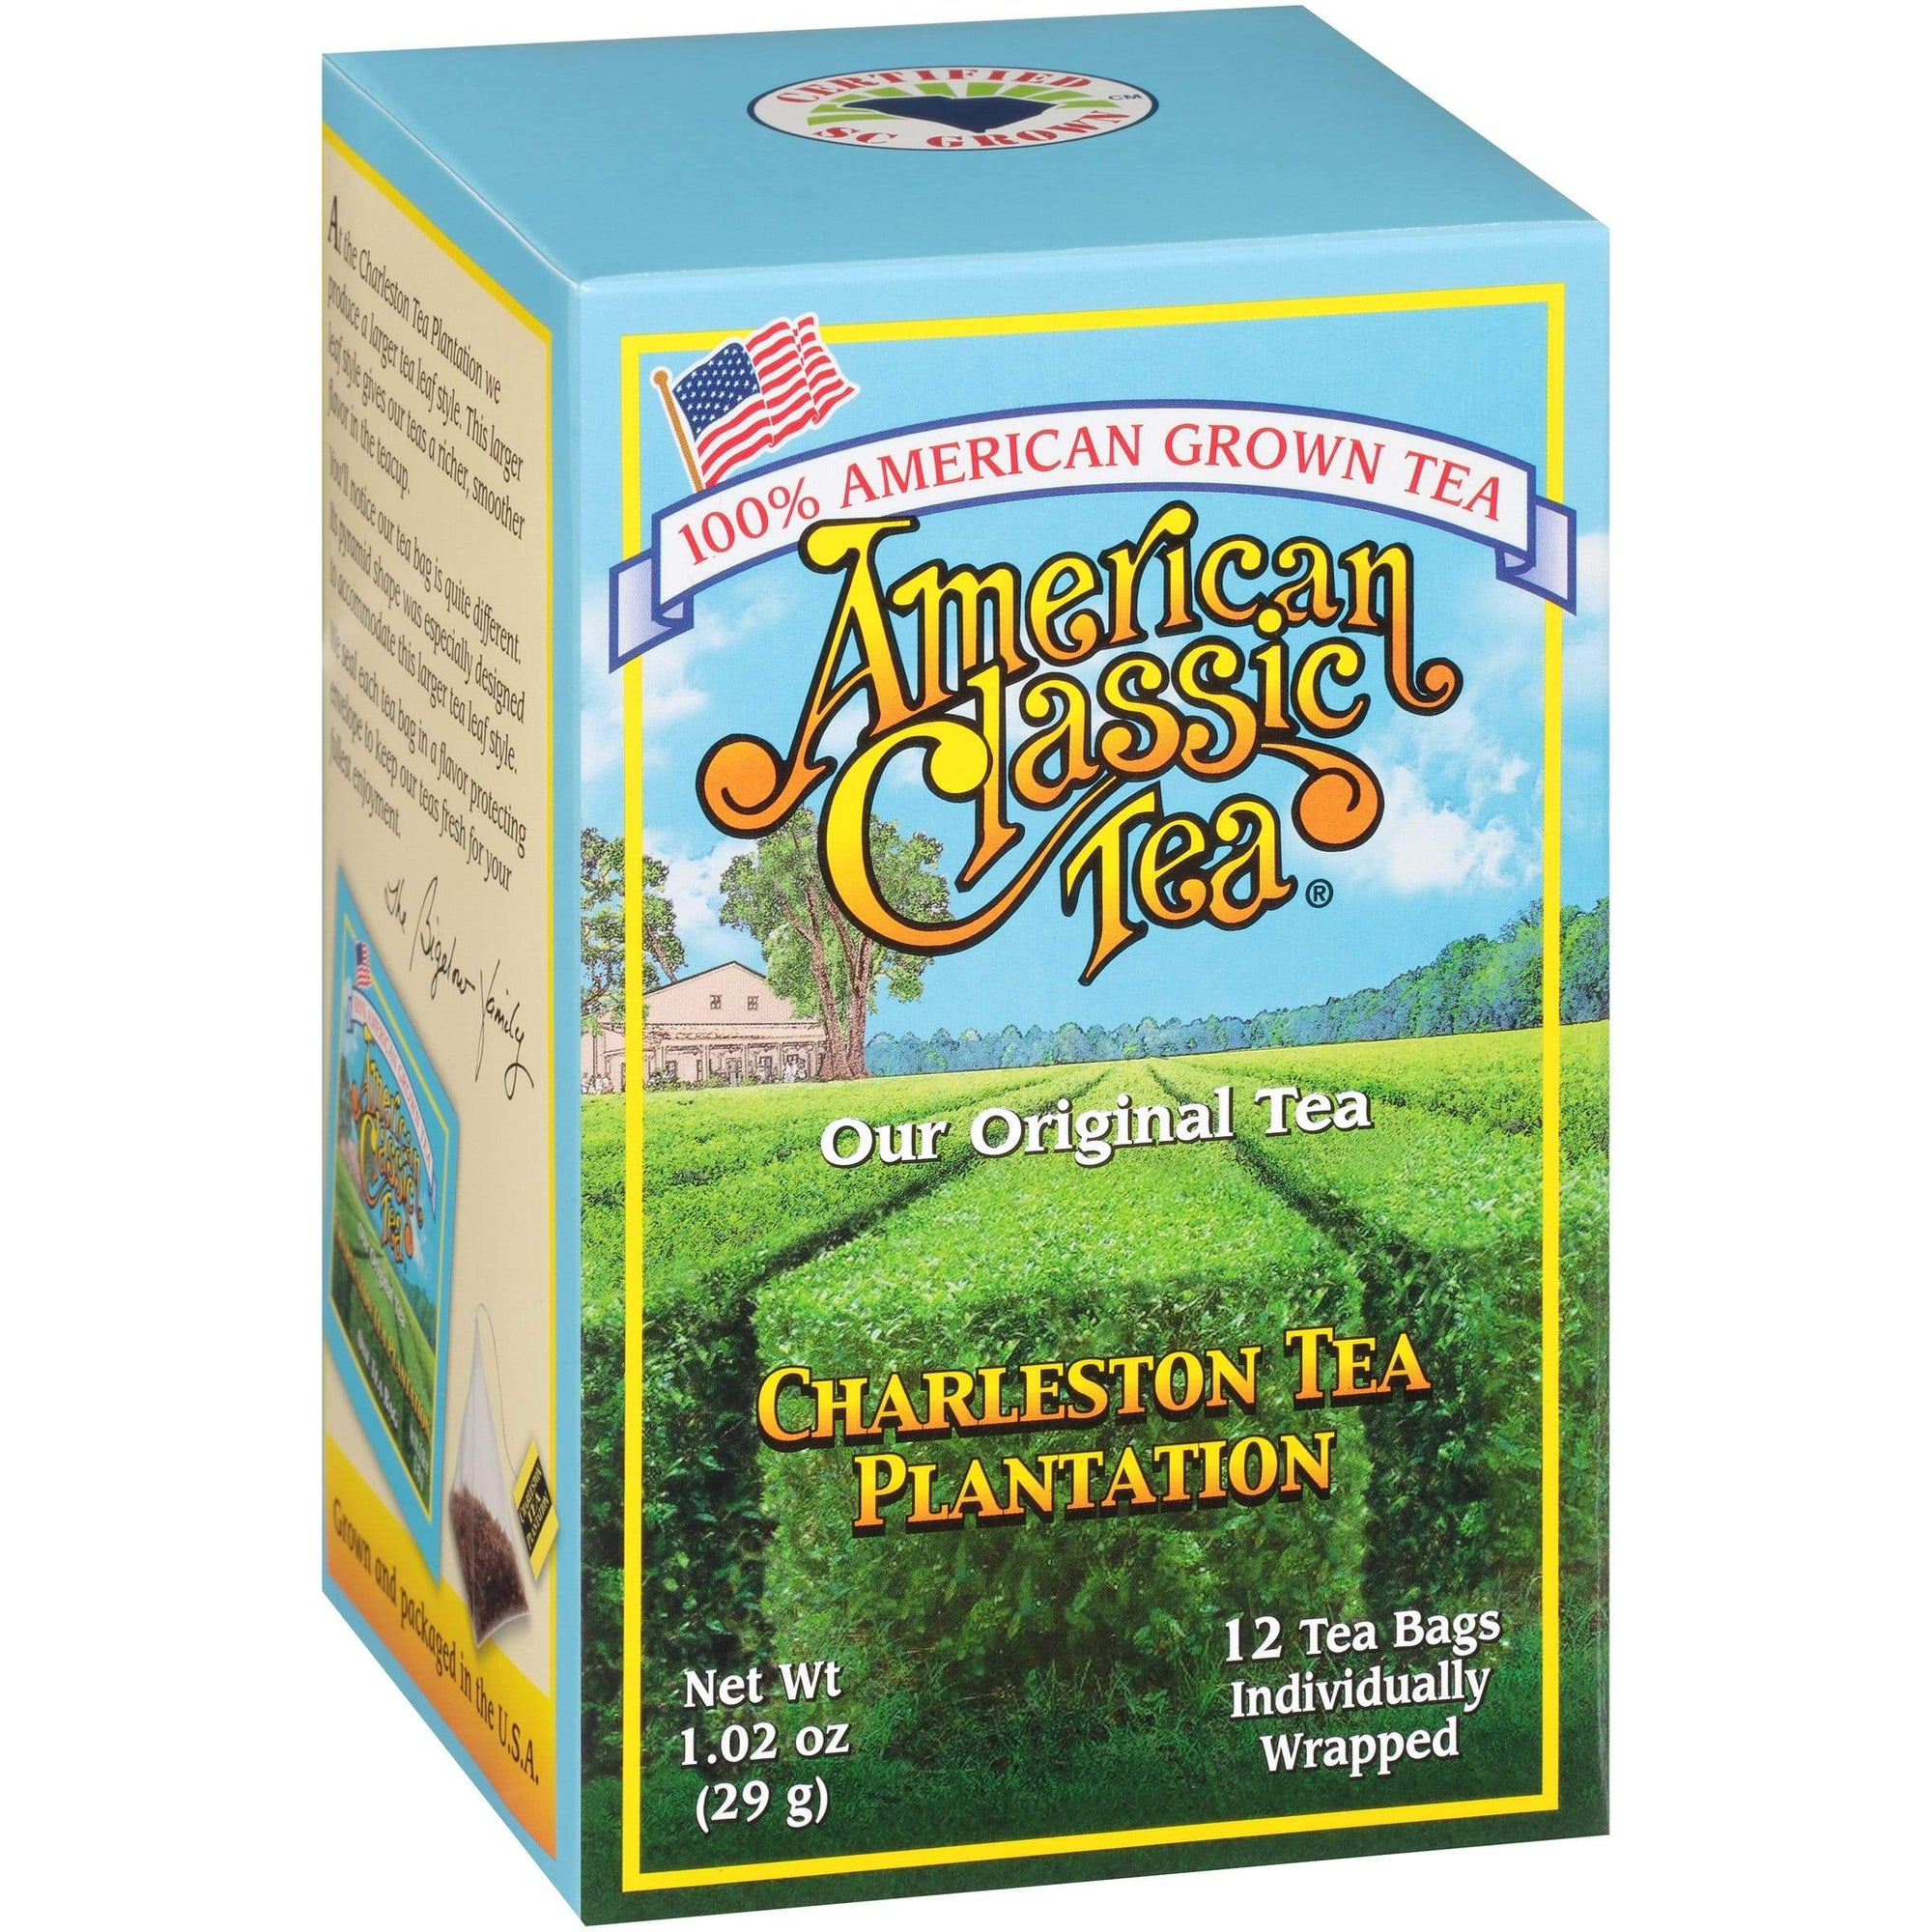 Charleston Plantation Tea Original American Classic Tea (100% American)-VIVA Scandinavia